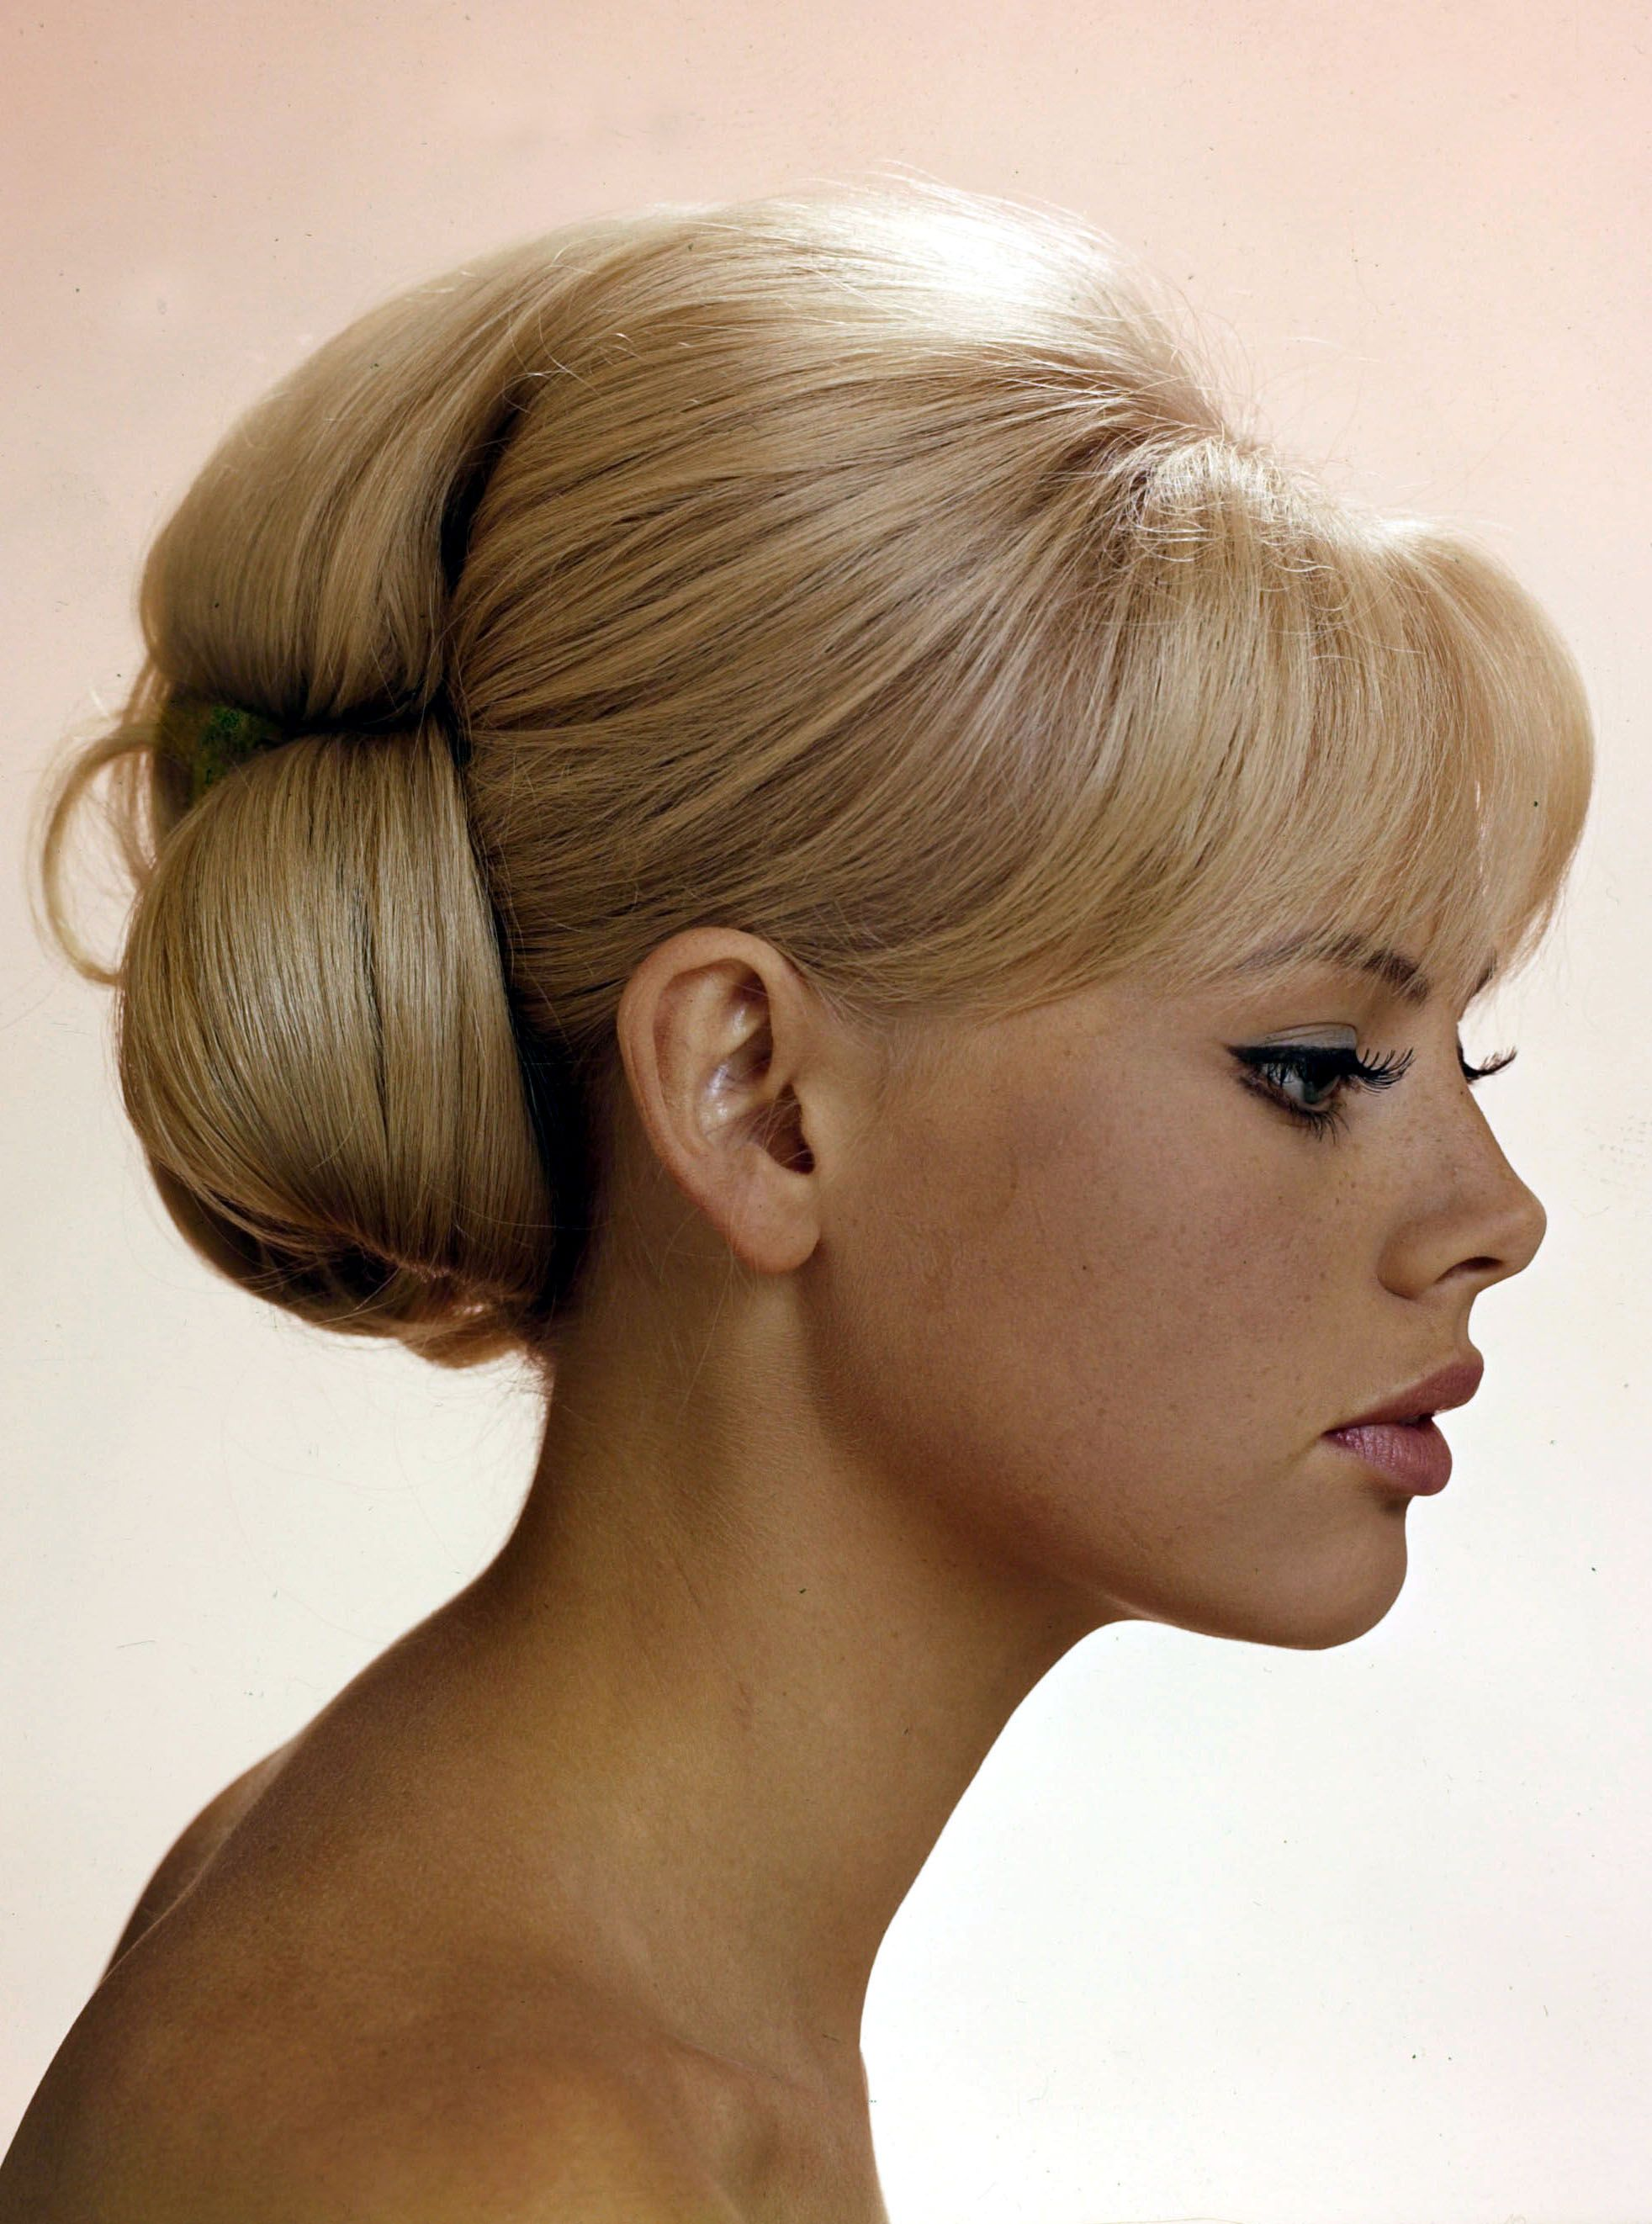 60s beehive hair | 50s-60s style. so i looked up vintage